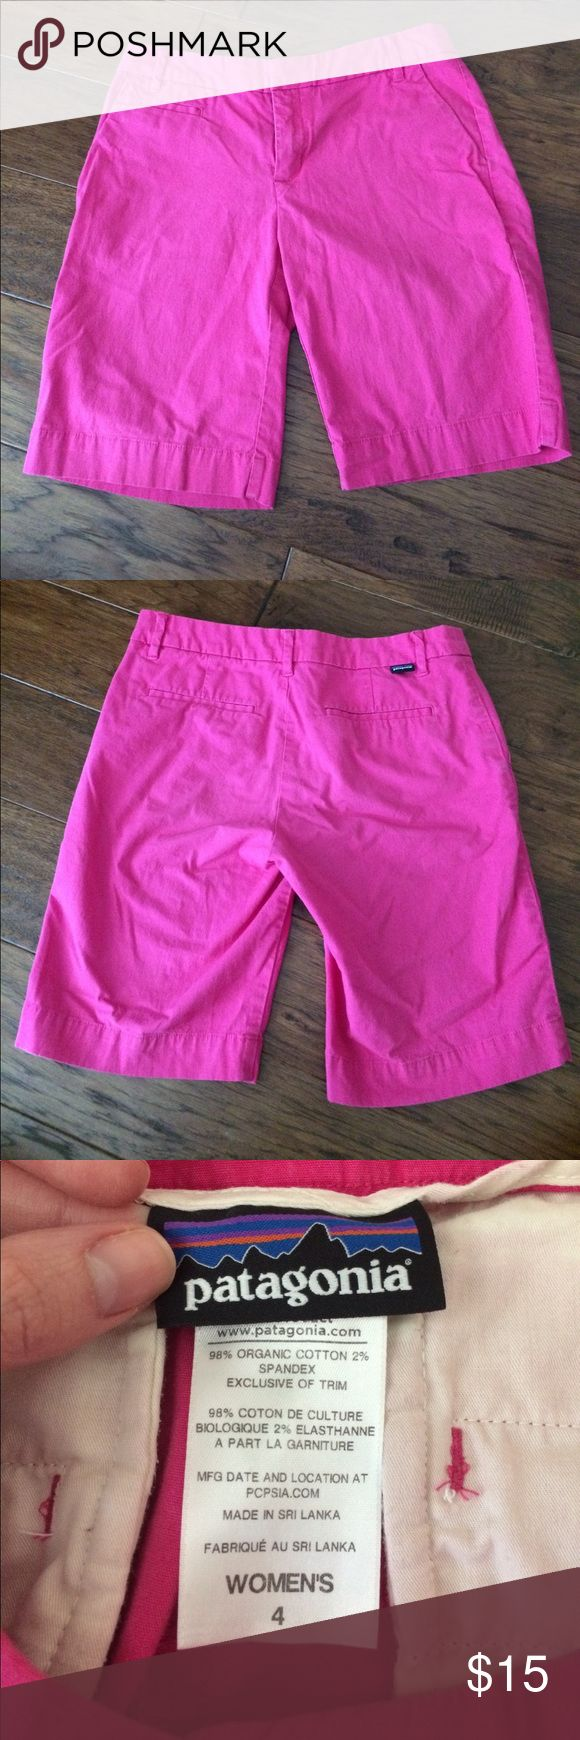 Patagonia shorts Pink, 9 inch inseam. Gently used, some wear from washing. Fits more like a 2. Patagonia Shorts Bermudas